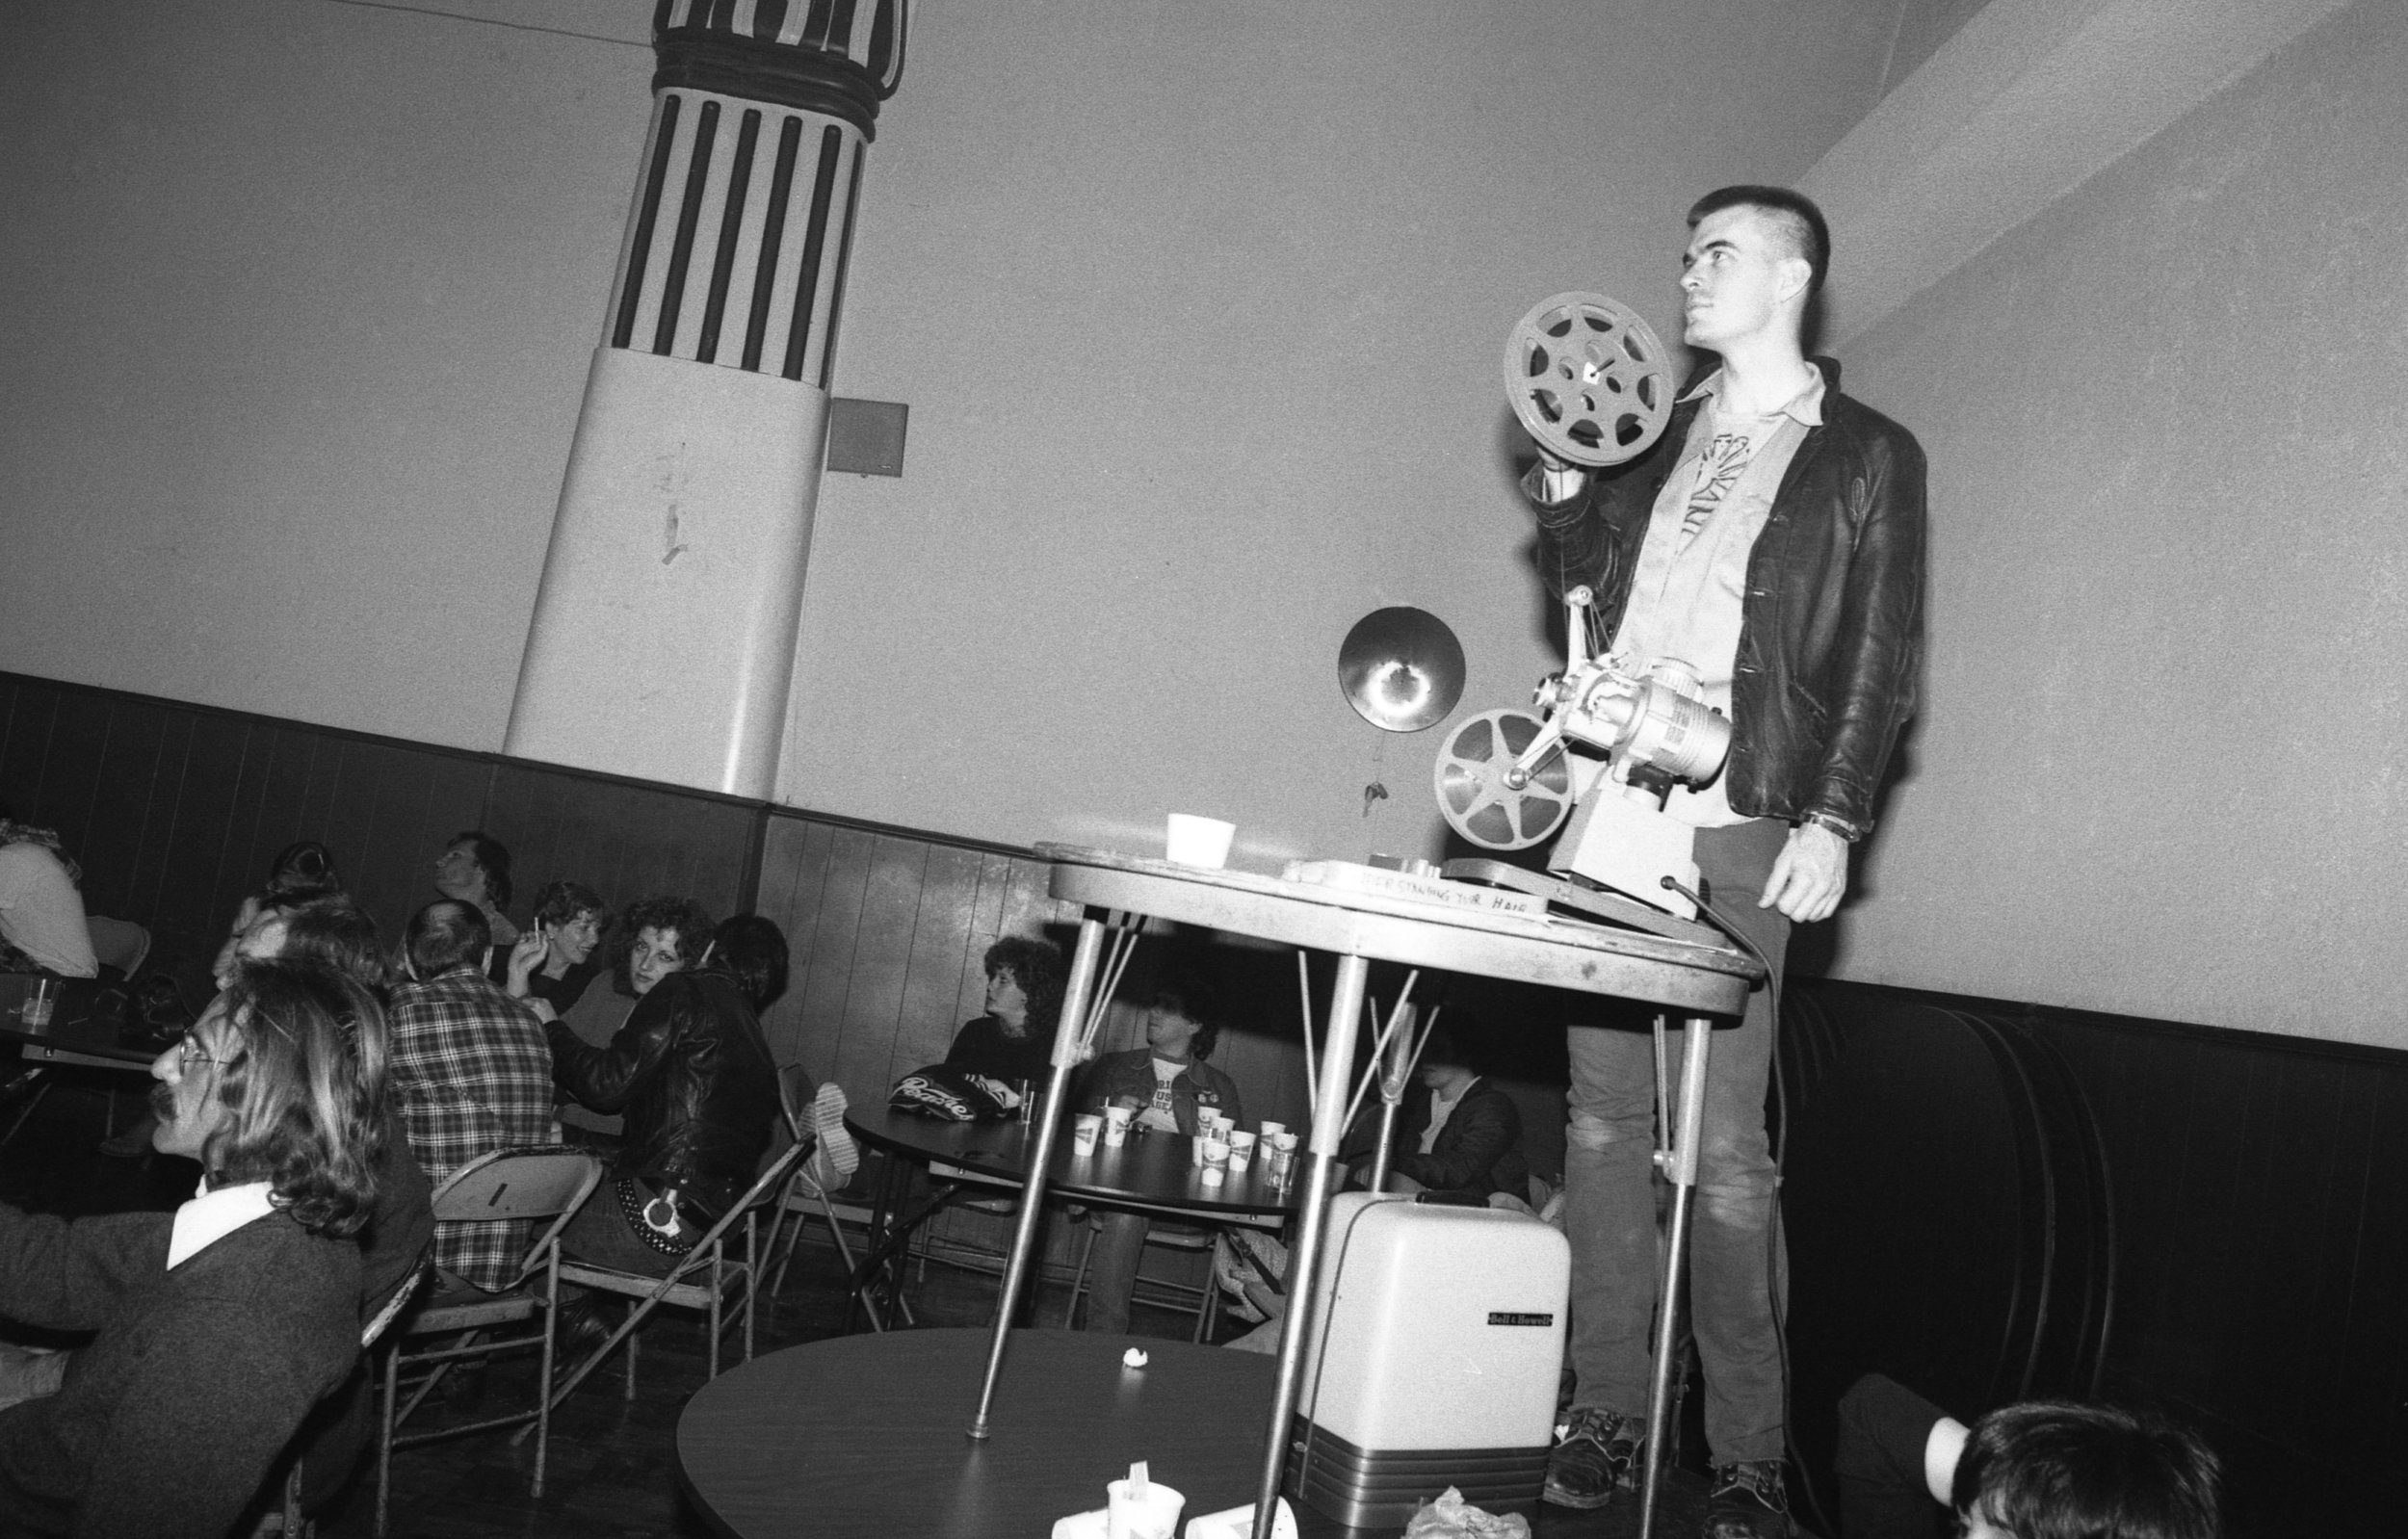 Event at Ukrainian Cultural Center, Los Angeles, 1982.